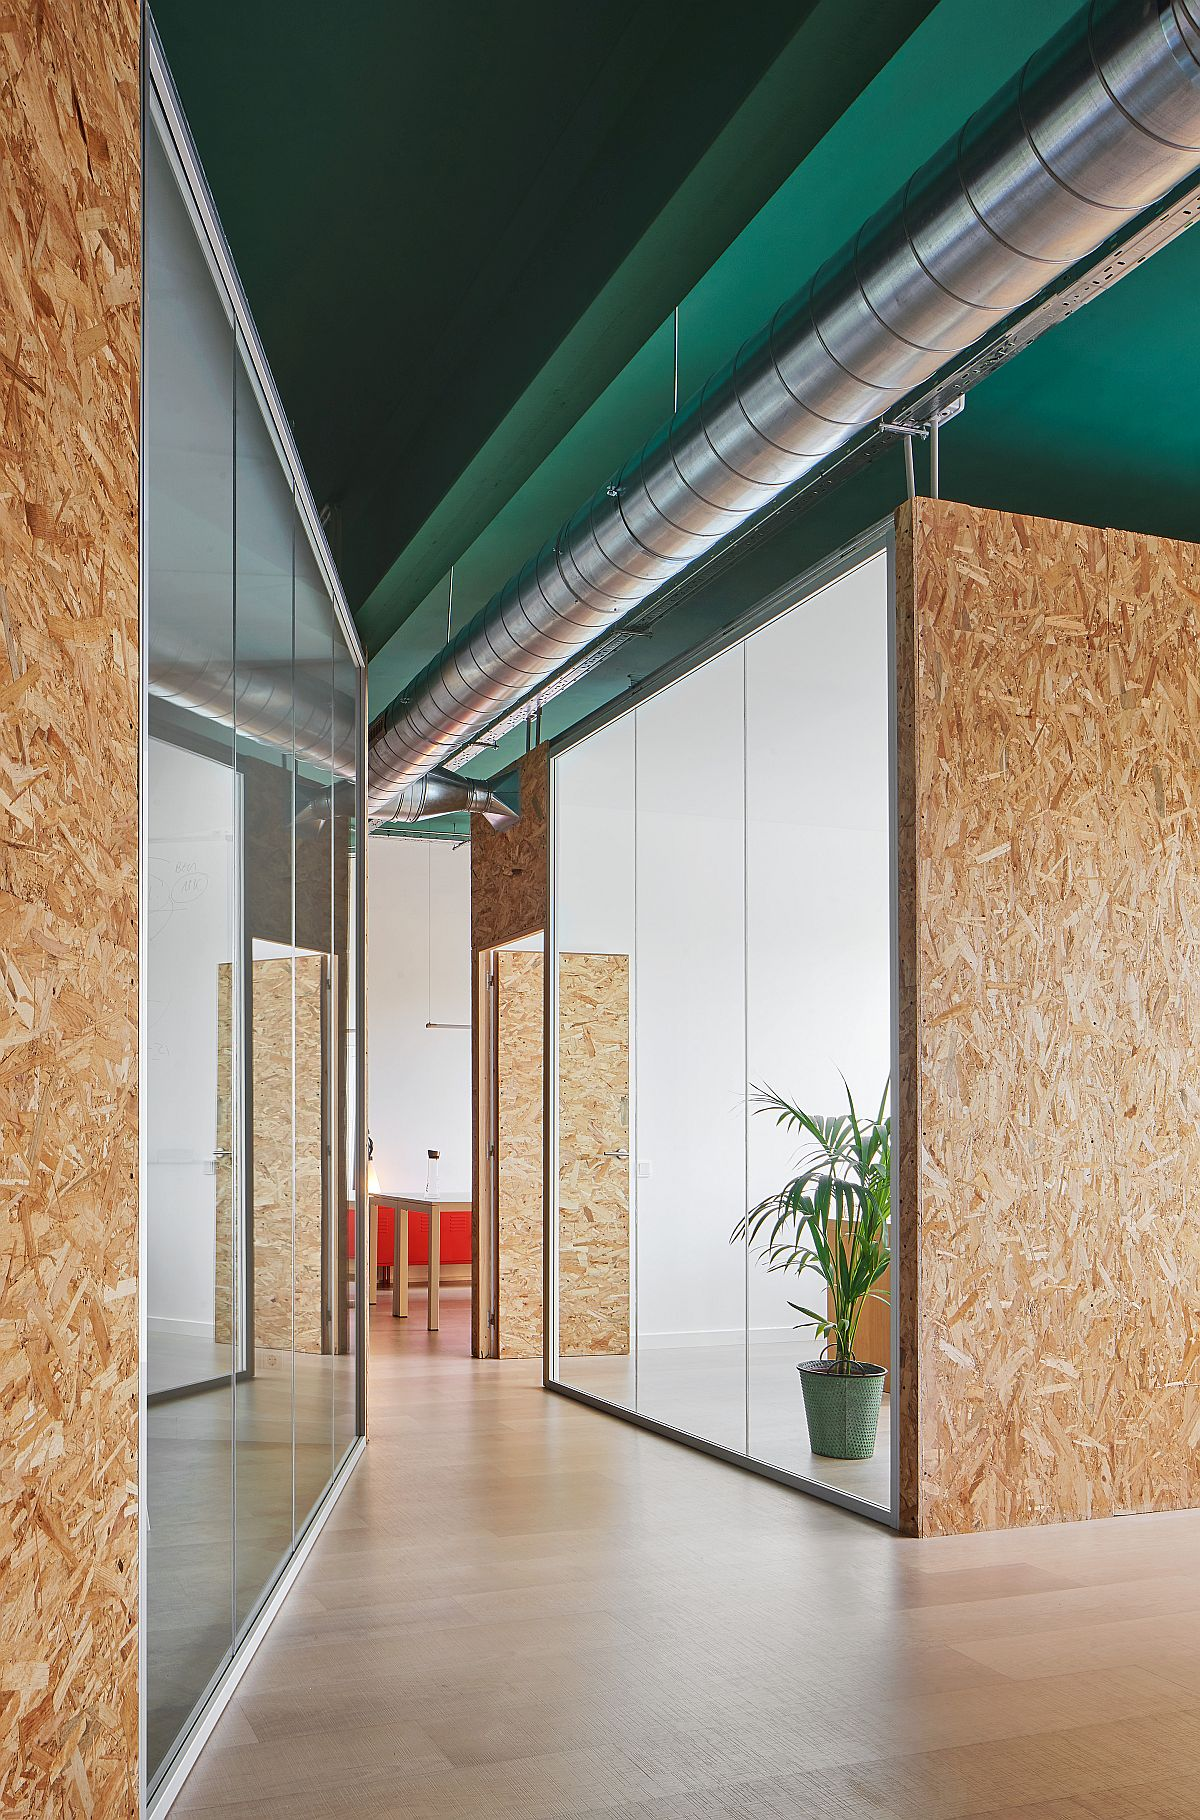 Two distinct boxes inside the office building serve as meeting room and management space